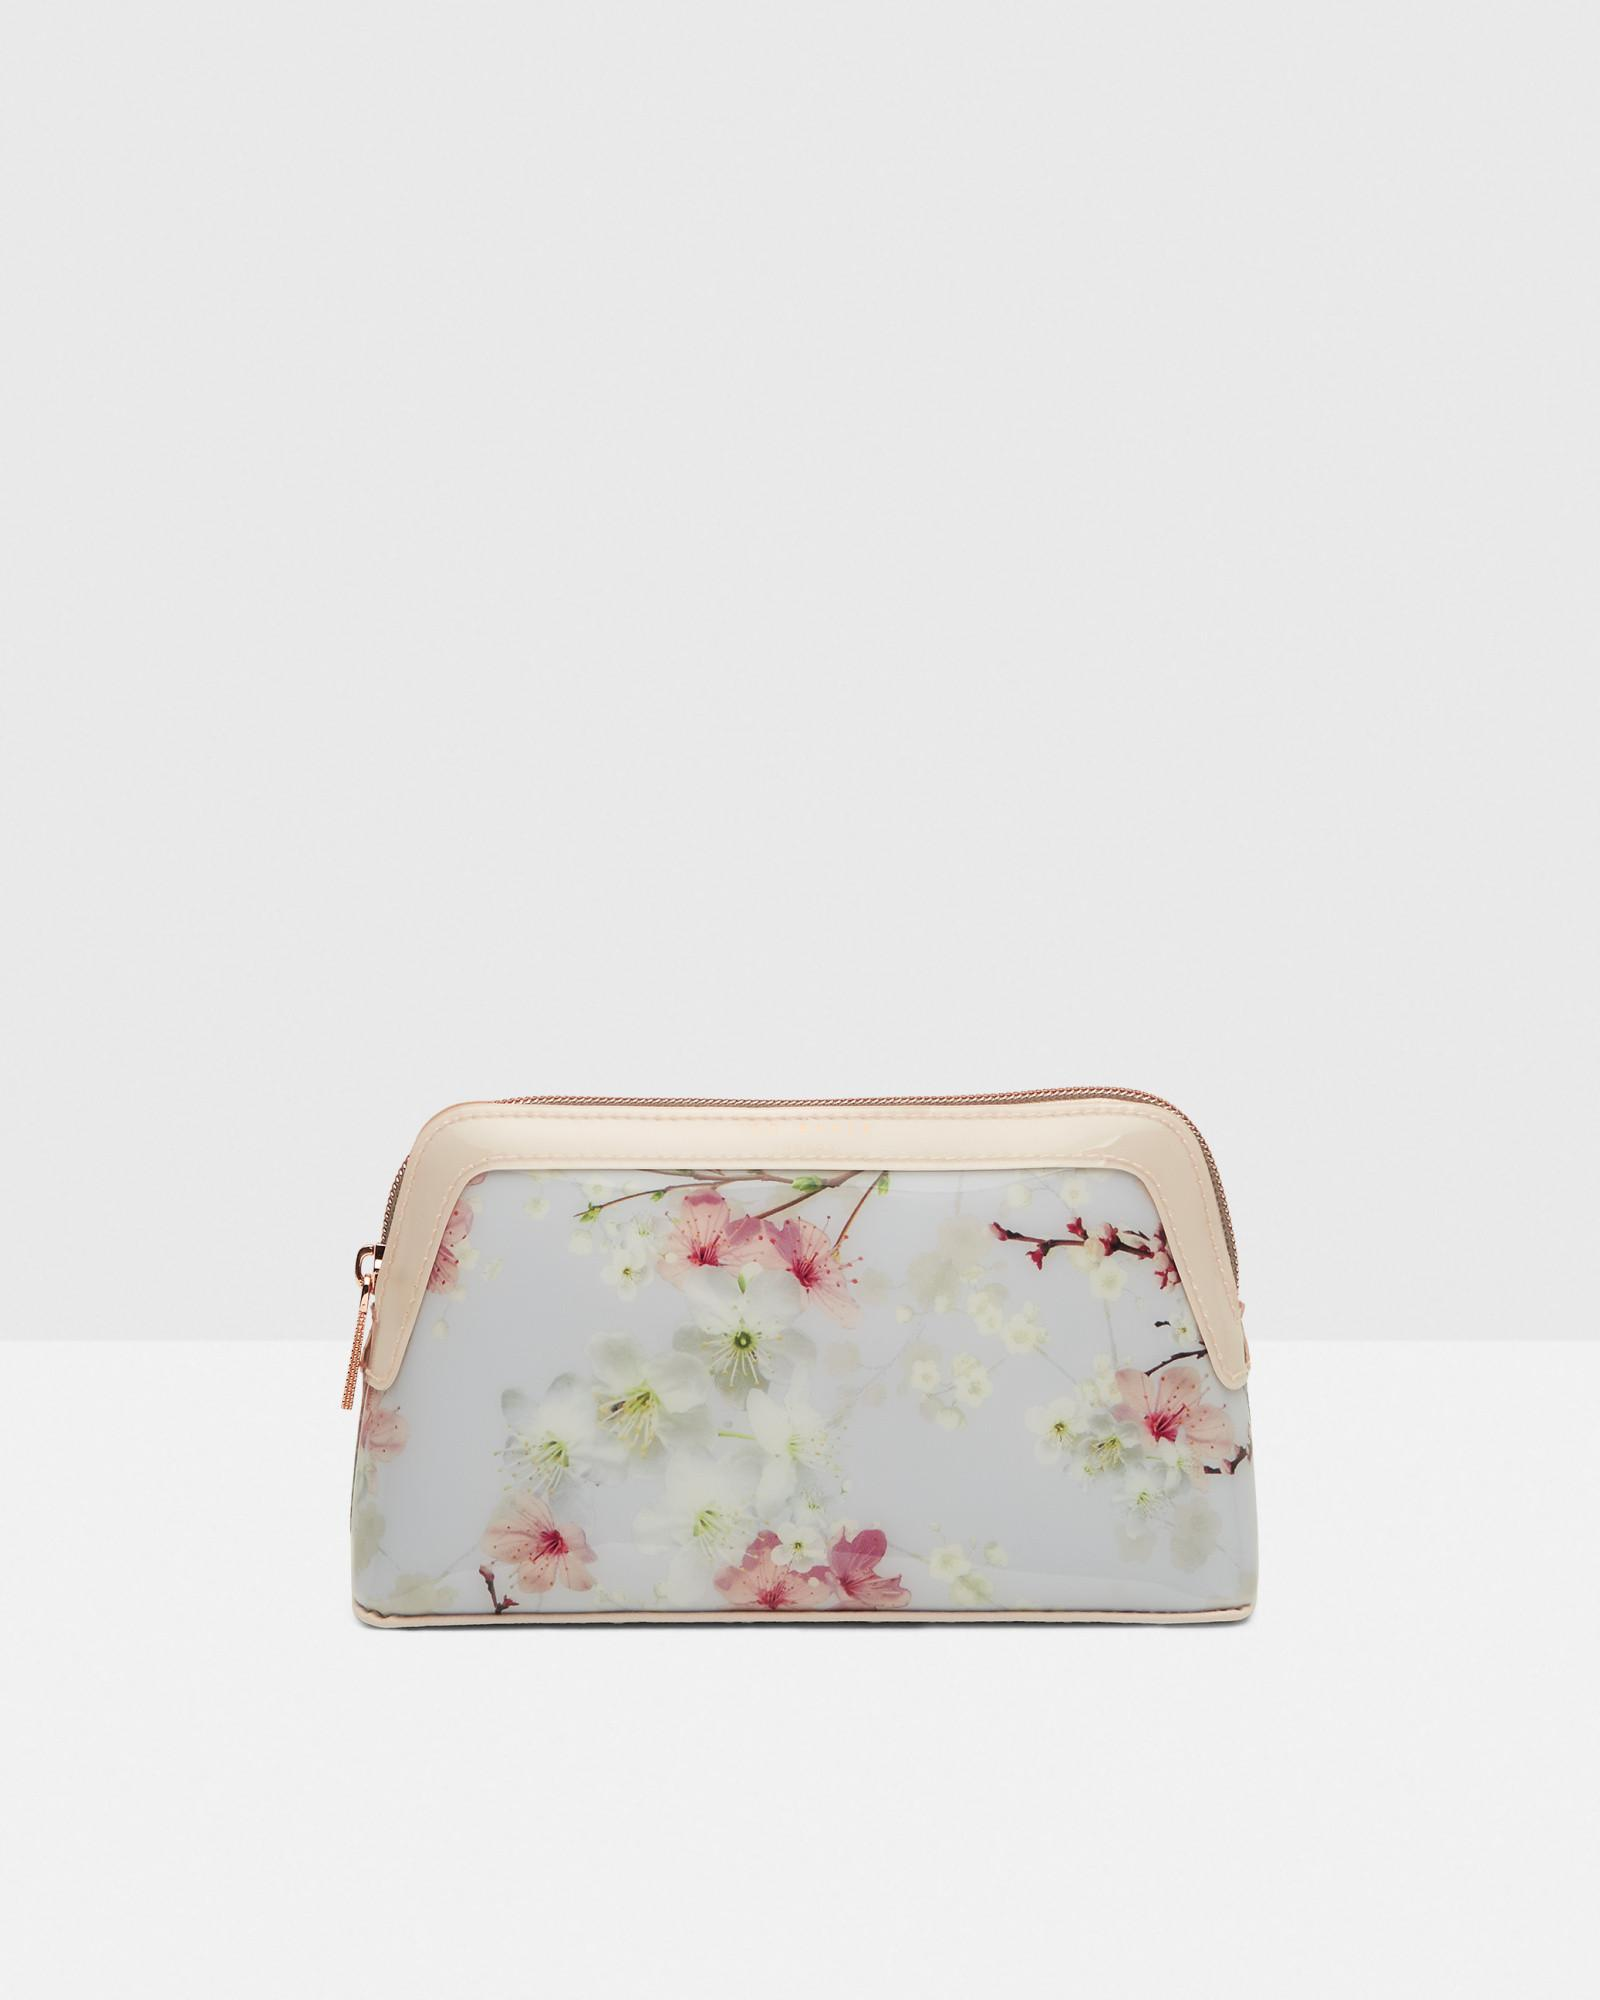 80767b0f8 Lyst - Ted Baker Oriental Blossom Make Up Bag in Gray